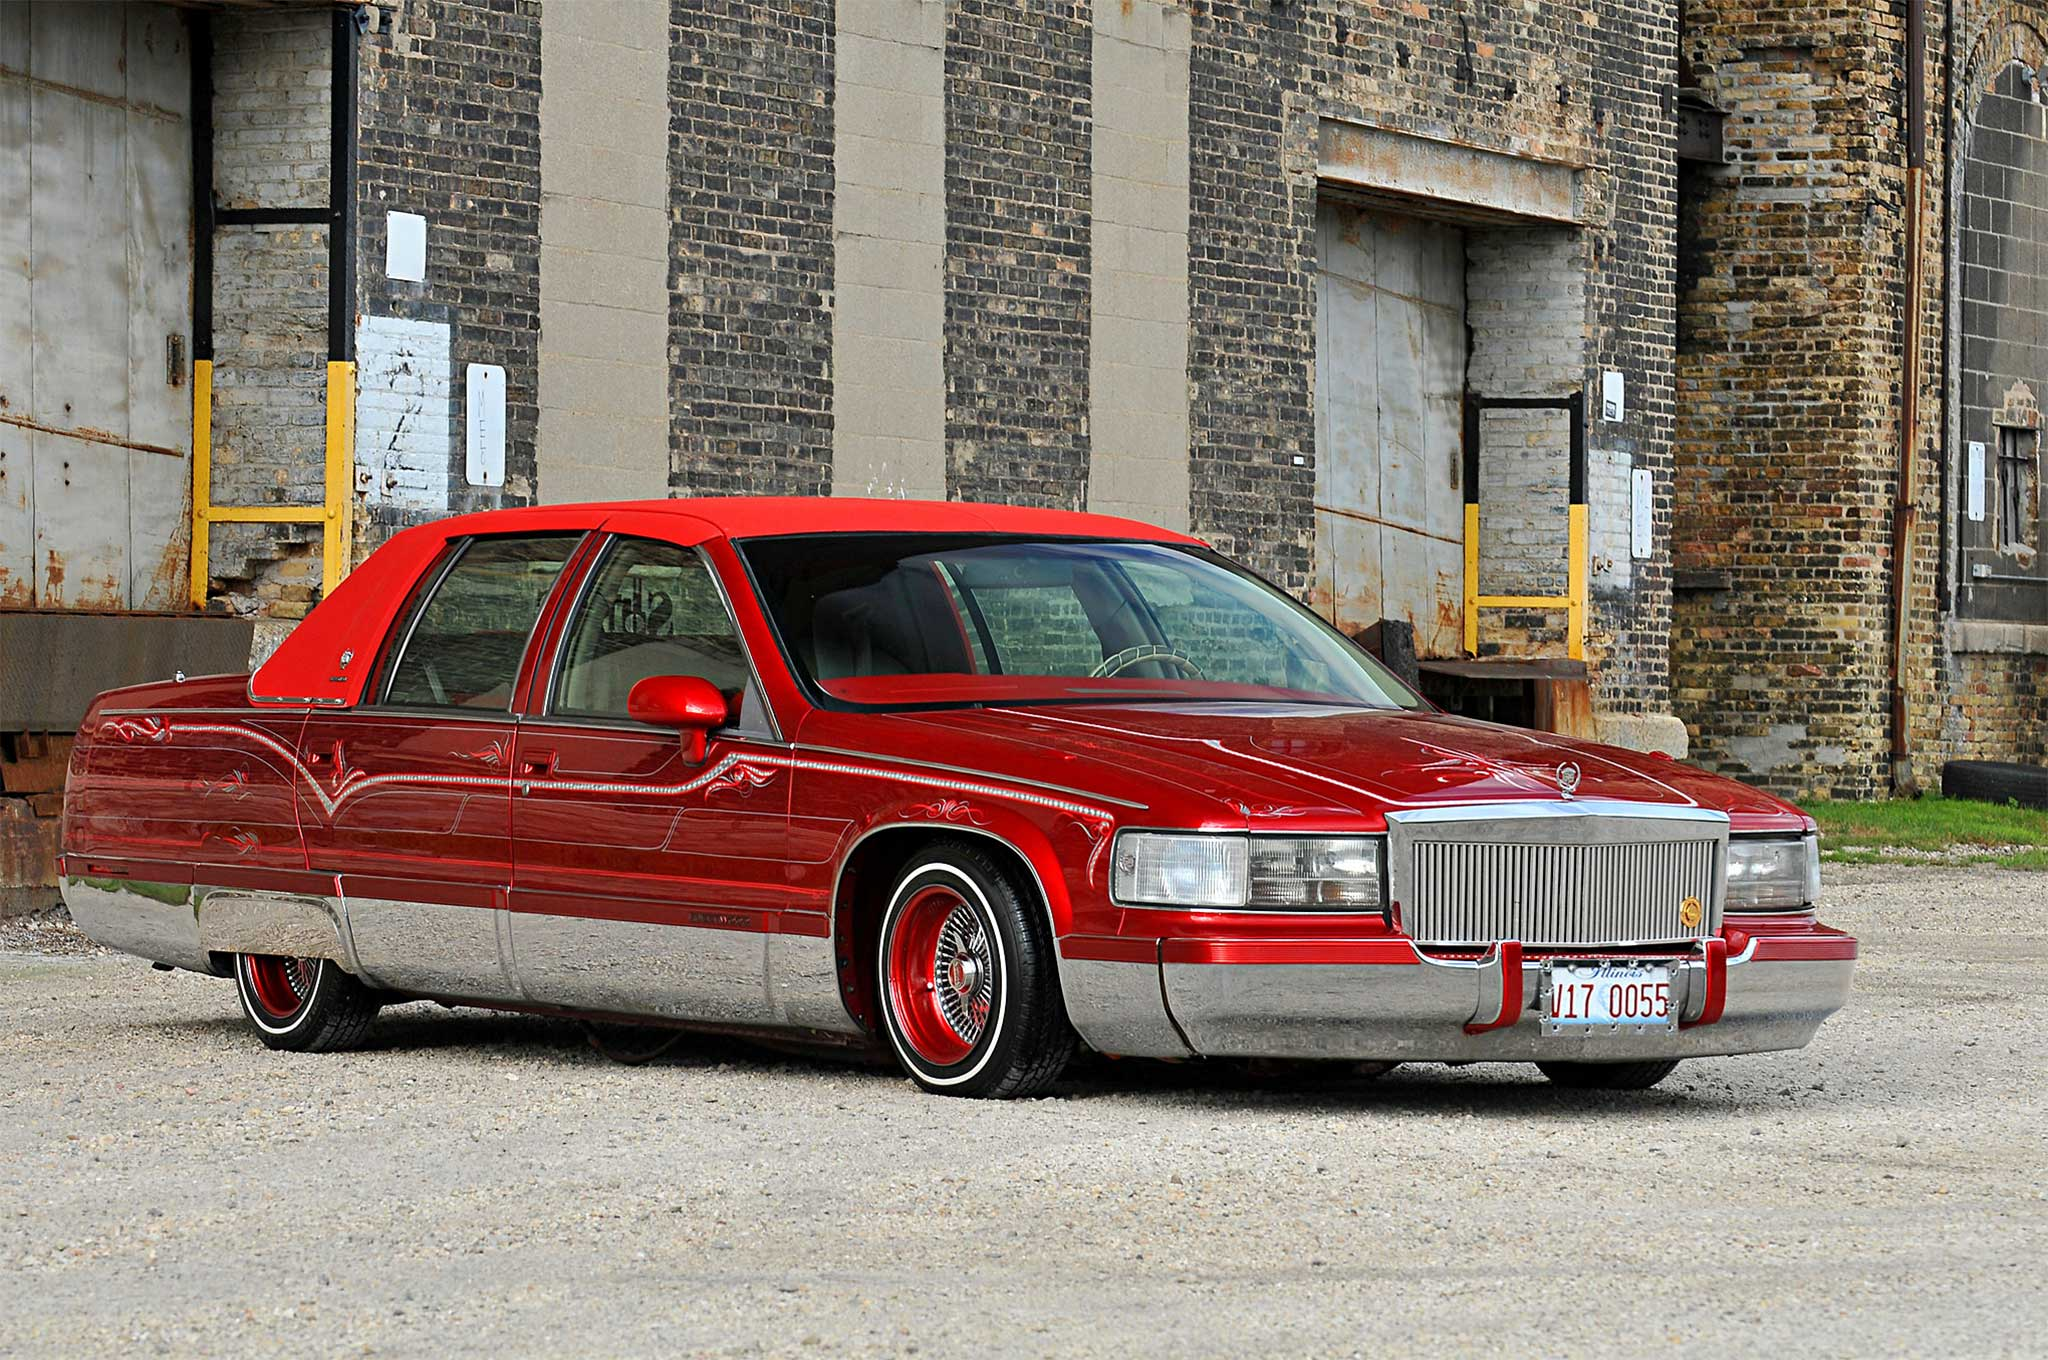 1994 Cadillac Fleetwood Passenger Side Front View 1 - Lowrider